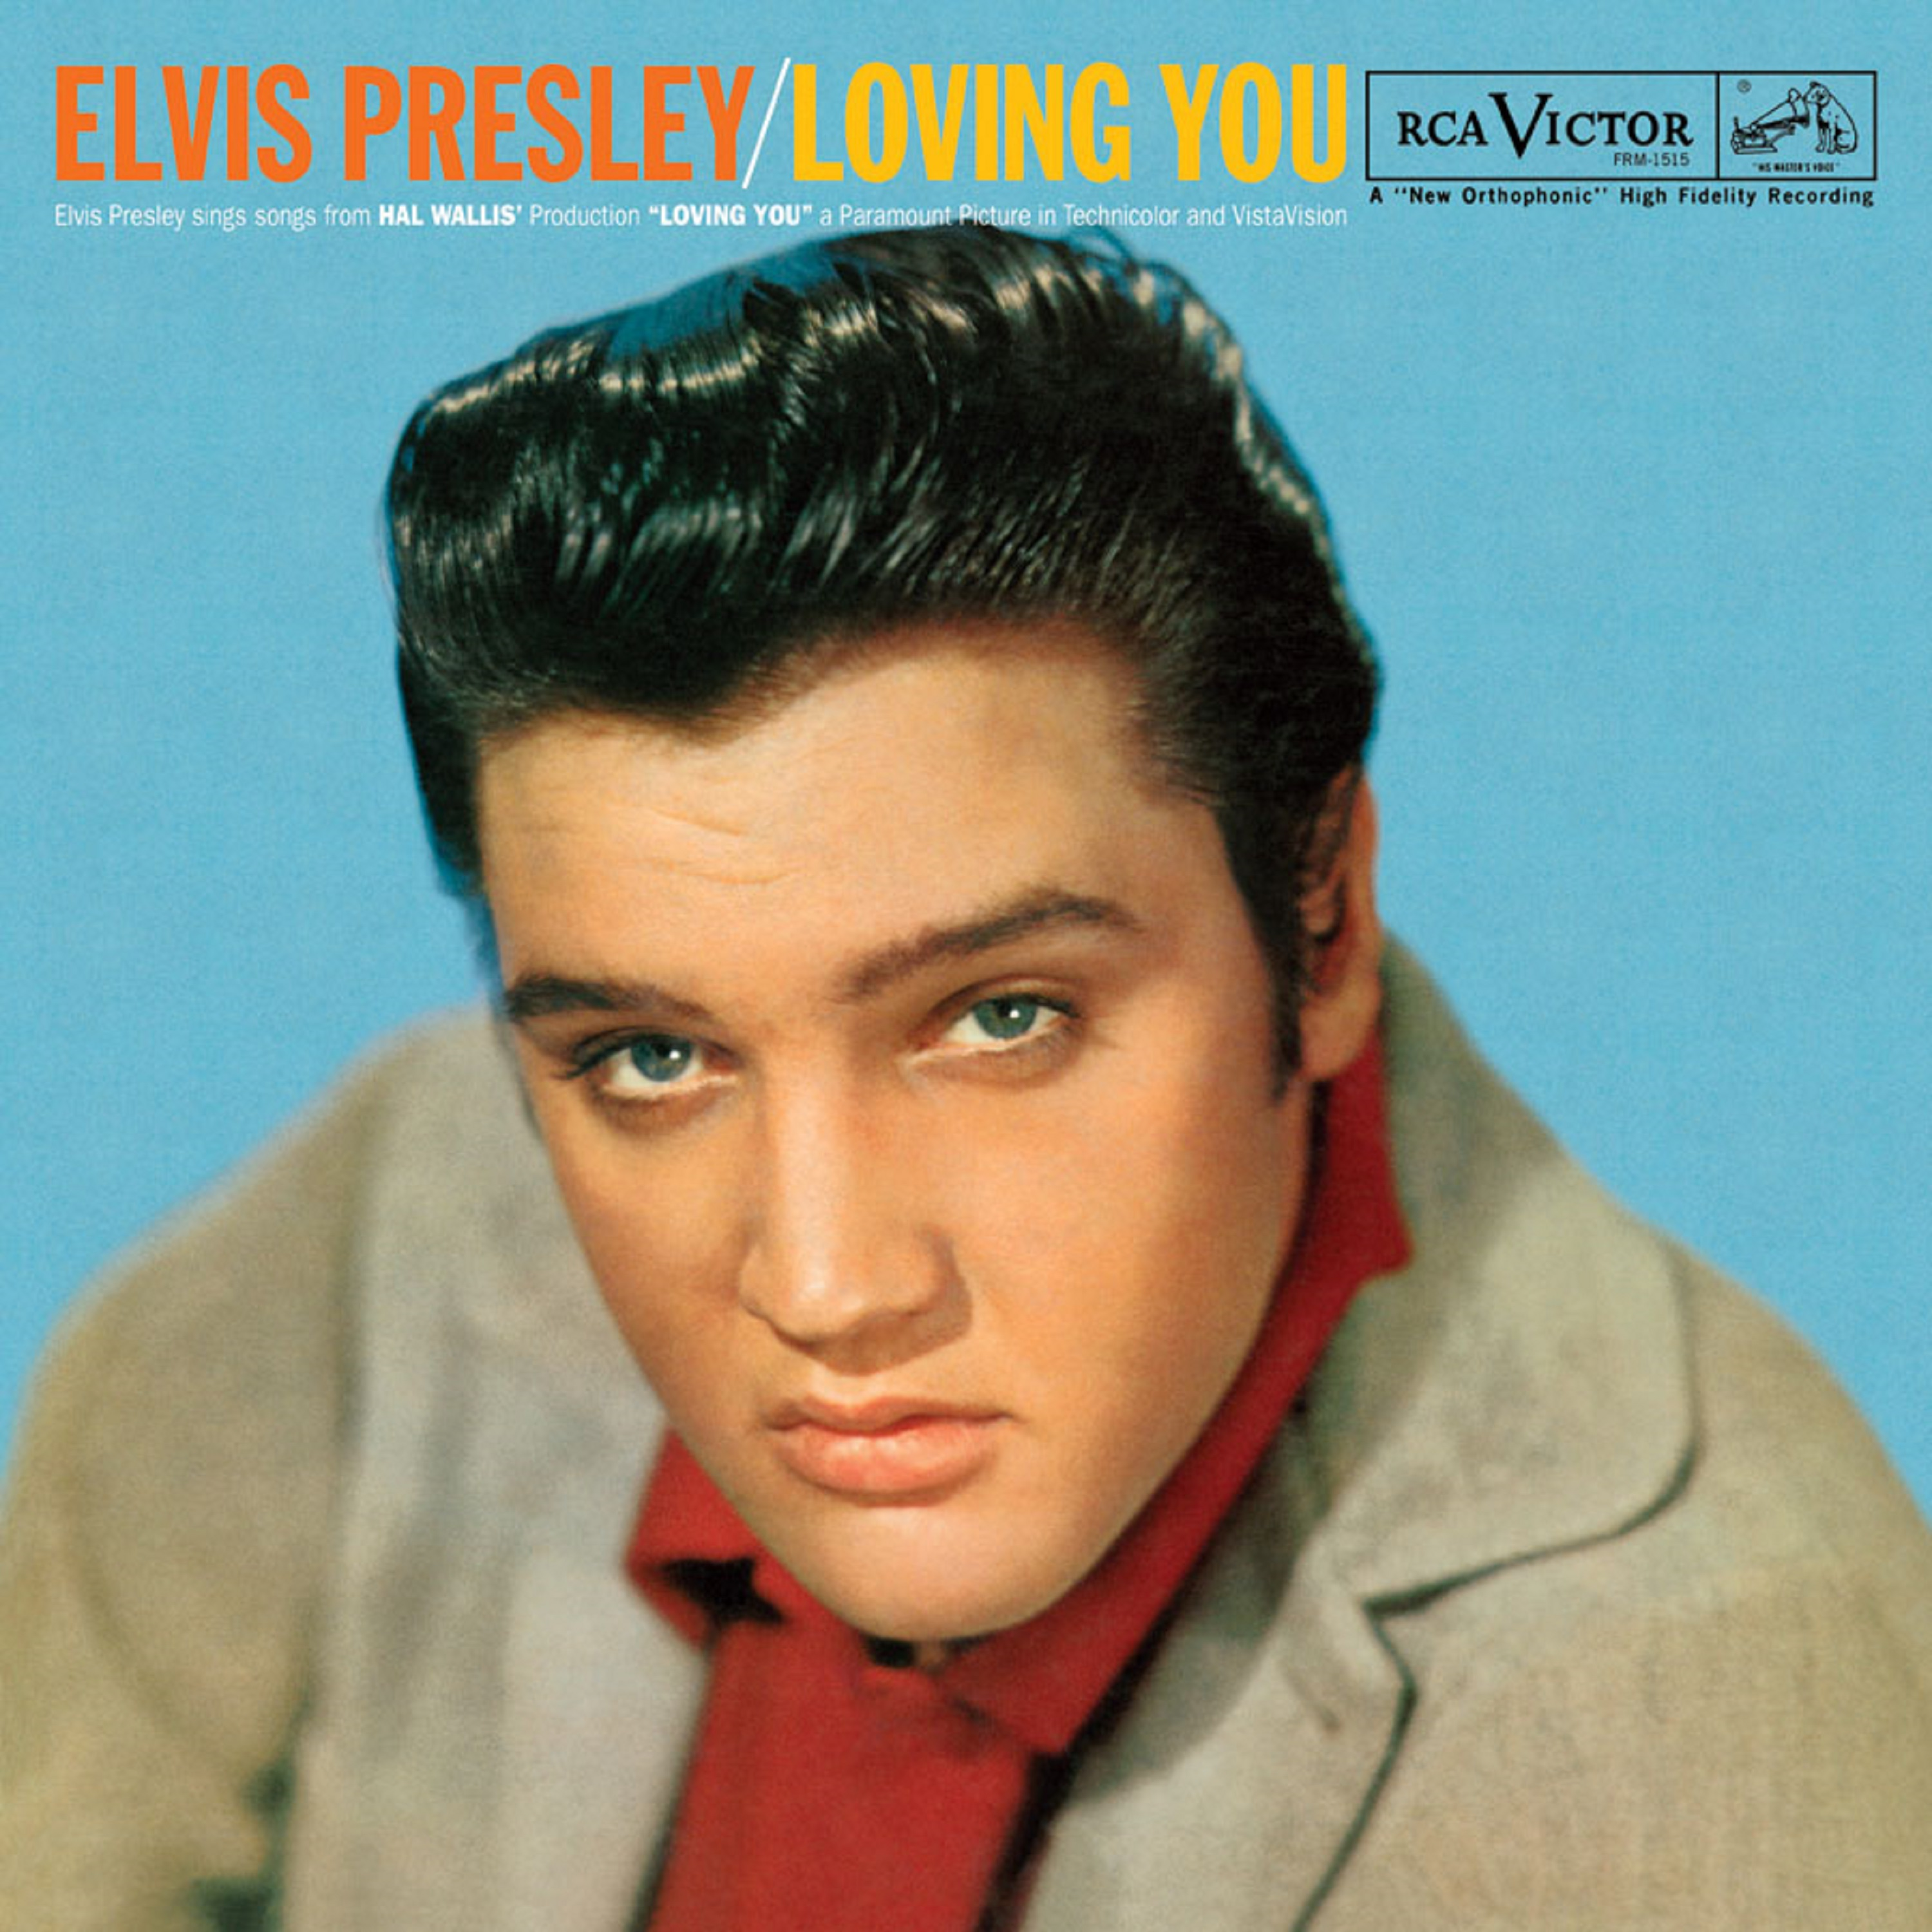 Elvis Presley - Loving You (180 Gram Translucent Gold Audiophile Vinyl/Limited Edition/Gatefold Cover)